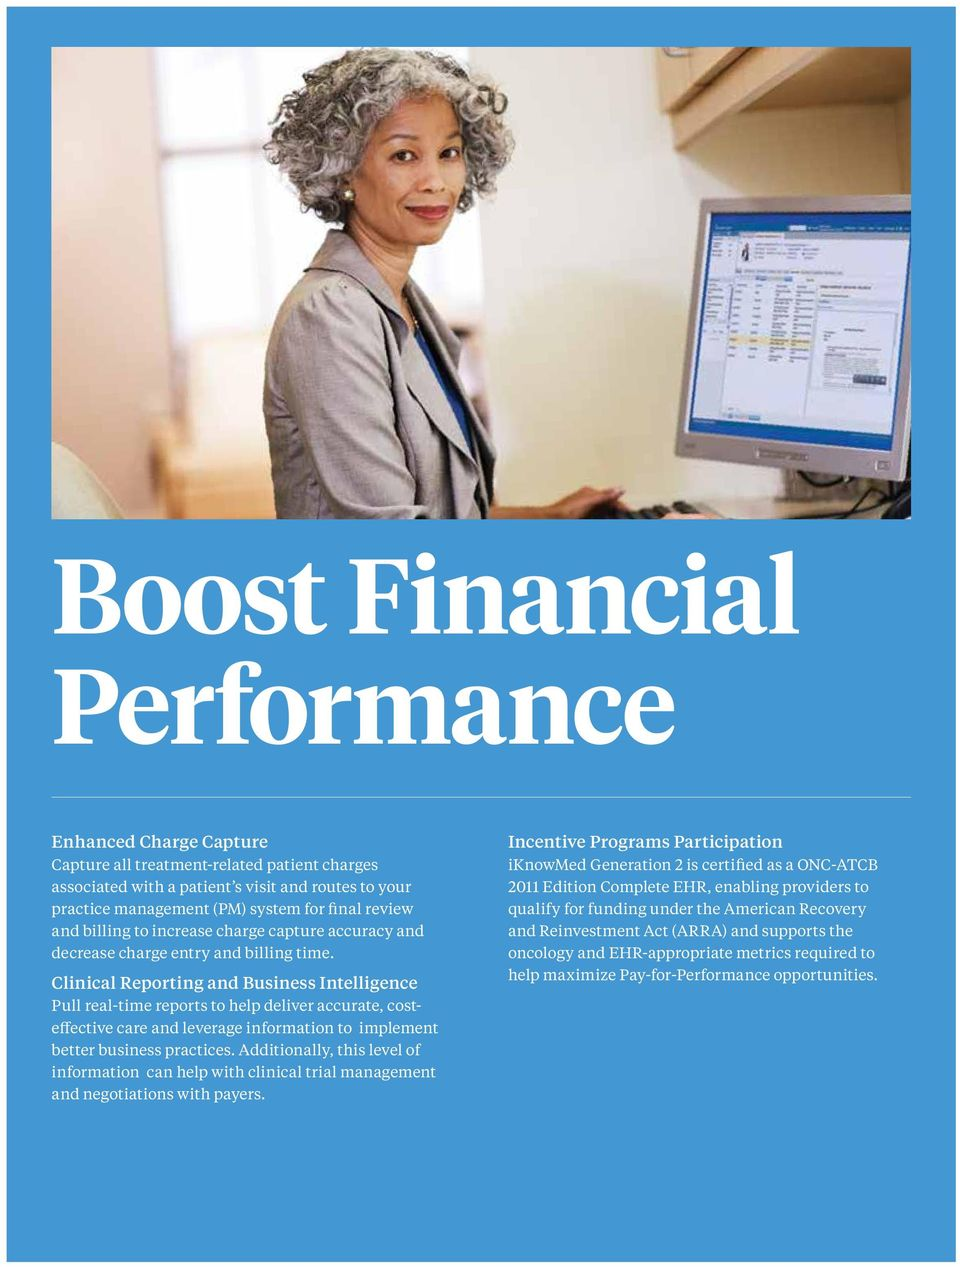 Clinical Reporting and Business Intelligence Pull real-time reports to help deliver accurate, costeffective care and leverage information to implement better business practices.